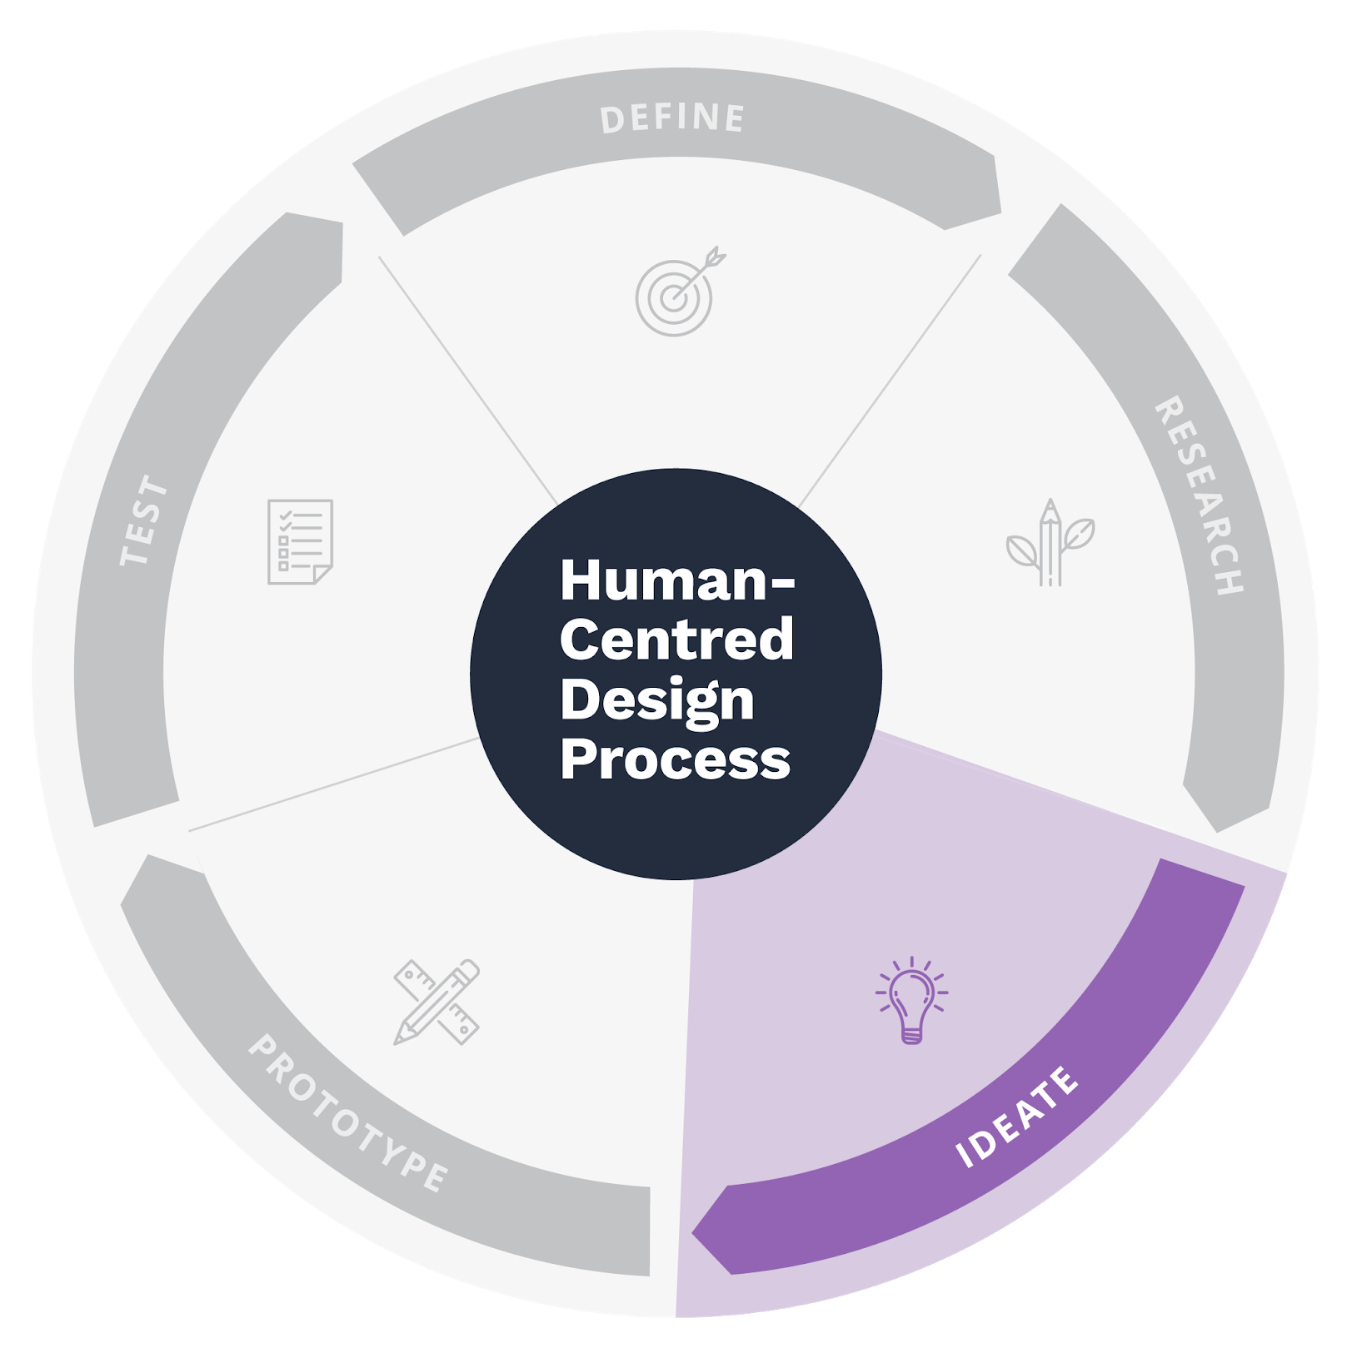 Start Solo is used during activities related to Ideation in the Human-Centered design process -